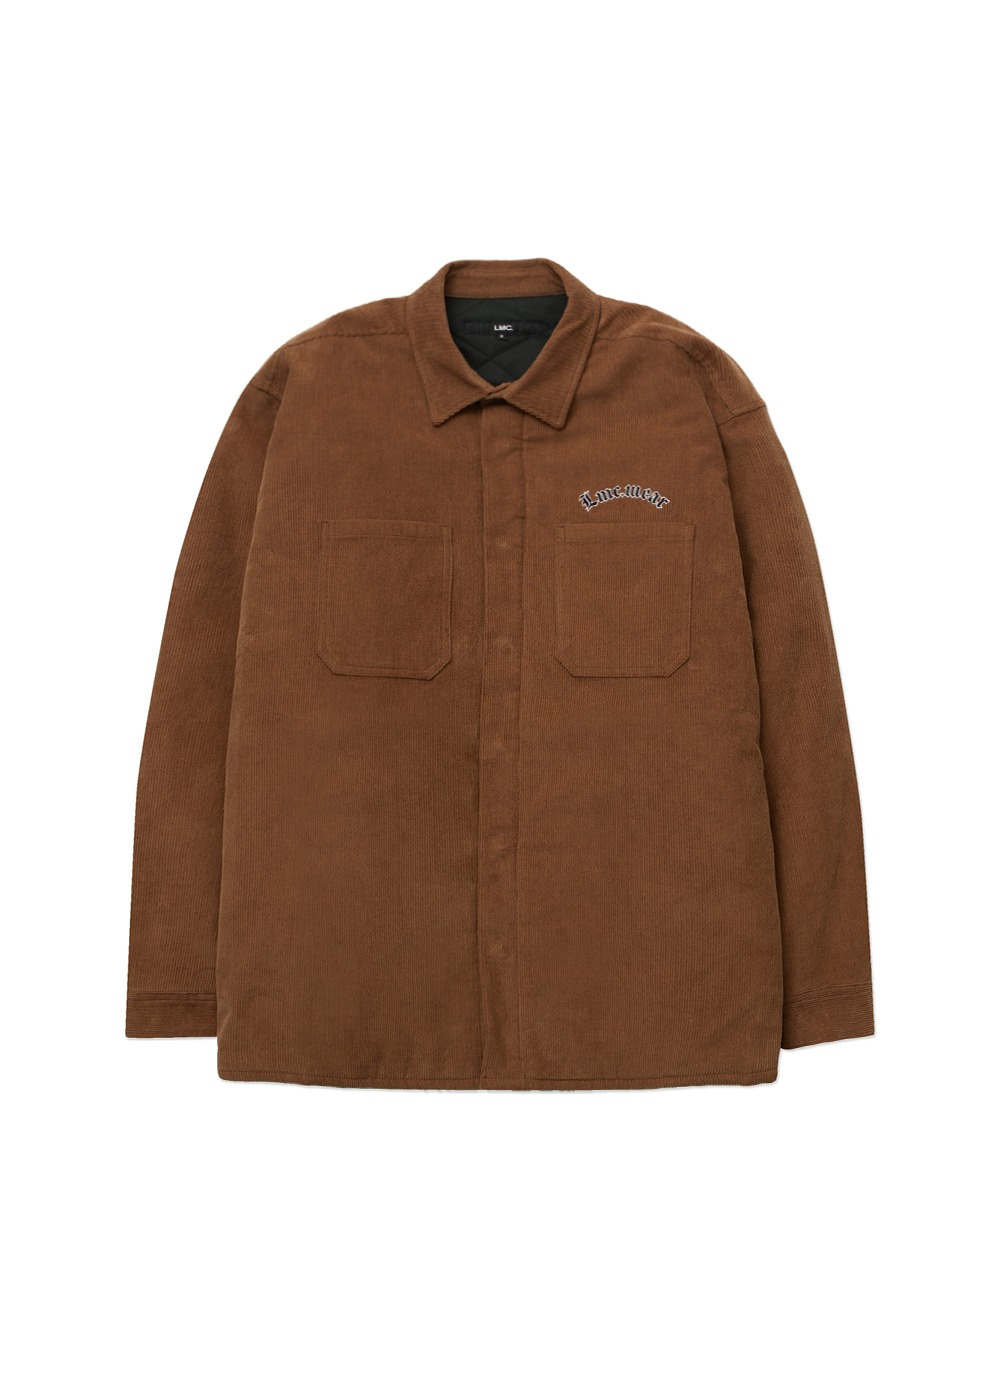 LMC CORDUROY PADDED SHIRTS JACKET brown